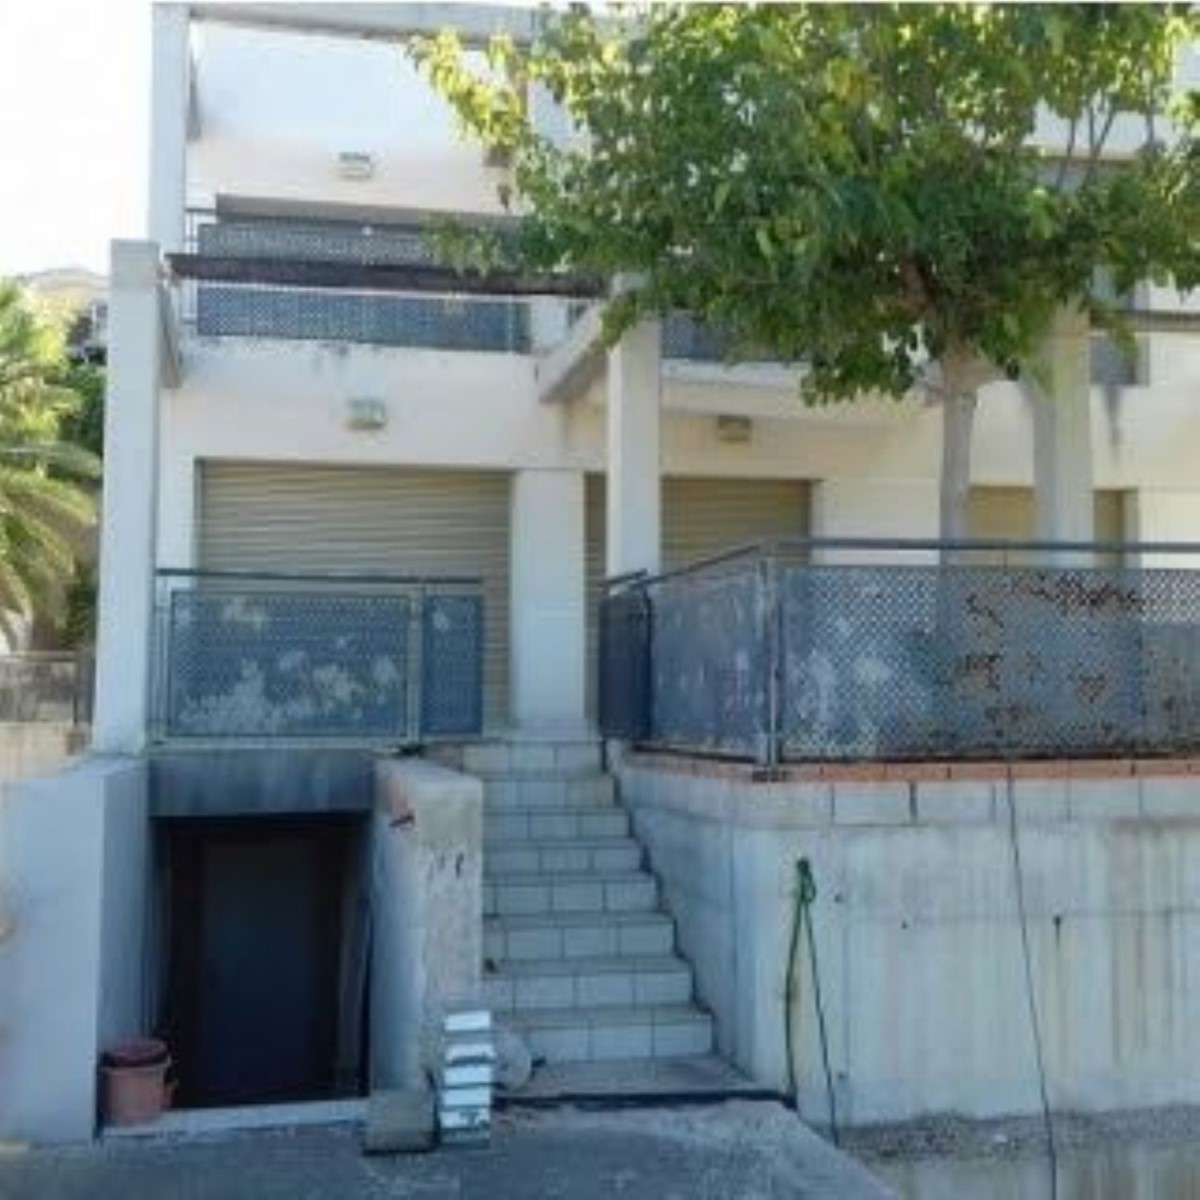 House  For Sale in  Las Torres de Cotillas